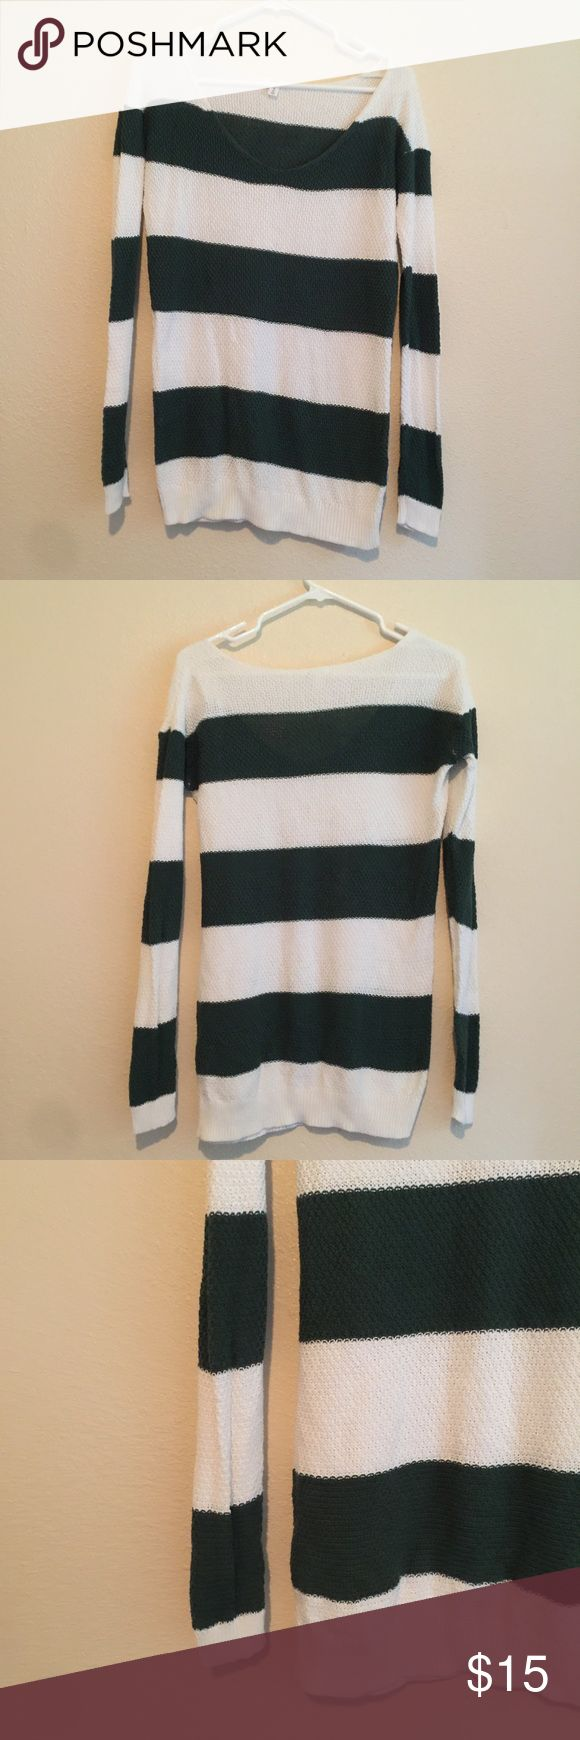 BP Nordstrom striped sweater green and white card Long sleeve striped sweater size XS perfect for St. Patrick's day! bp Sweaters Crew & Scoop Necks